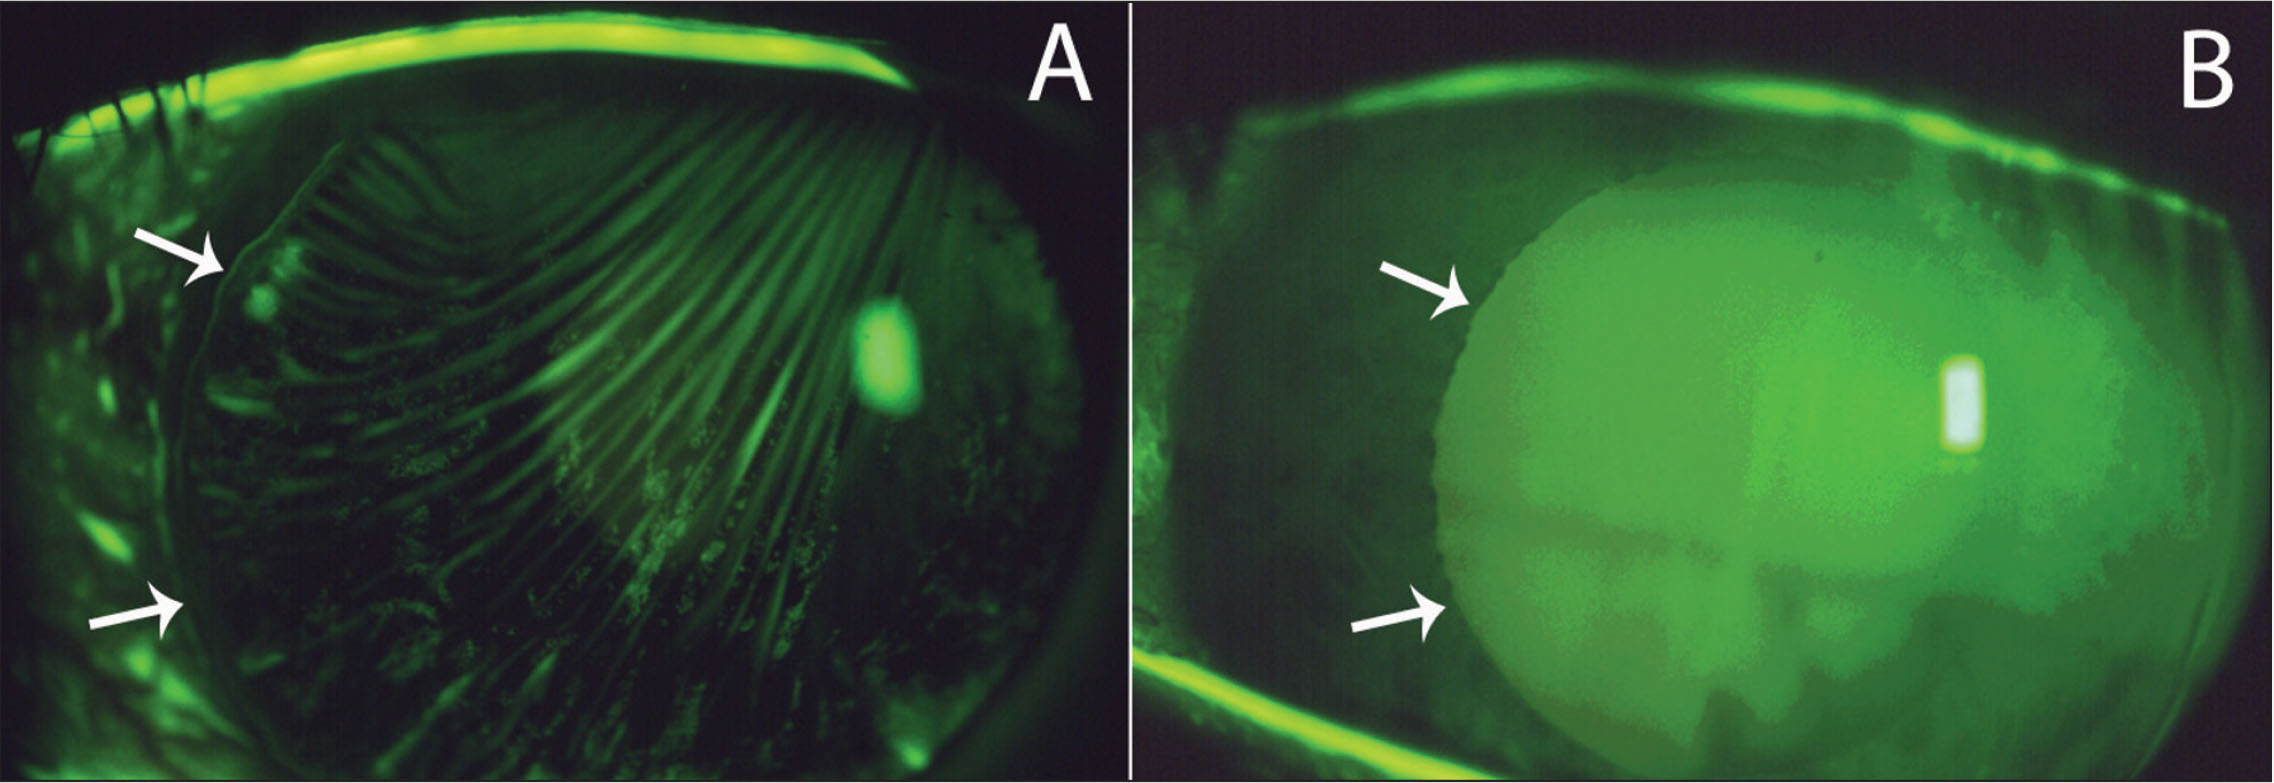 (A) Large flap striae visible with green lissamine (arrows indicate flap edge) after LASIK with a mechanical microkeratome. (B) One day after flap hydration, stroking with an iris spatula and repositioning.